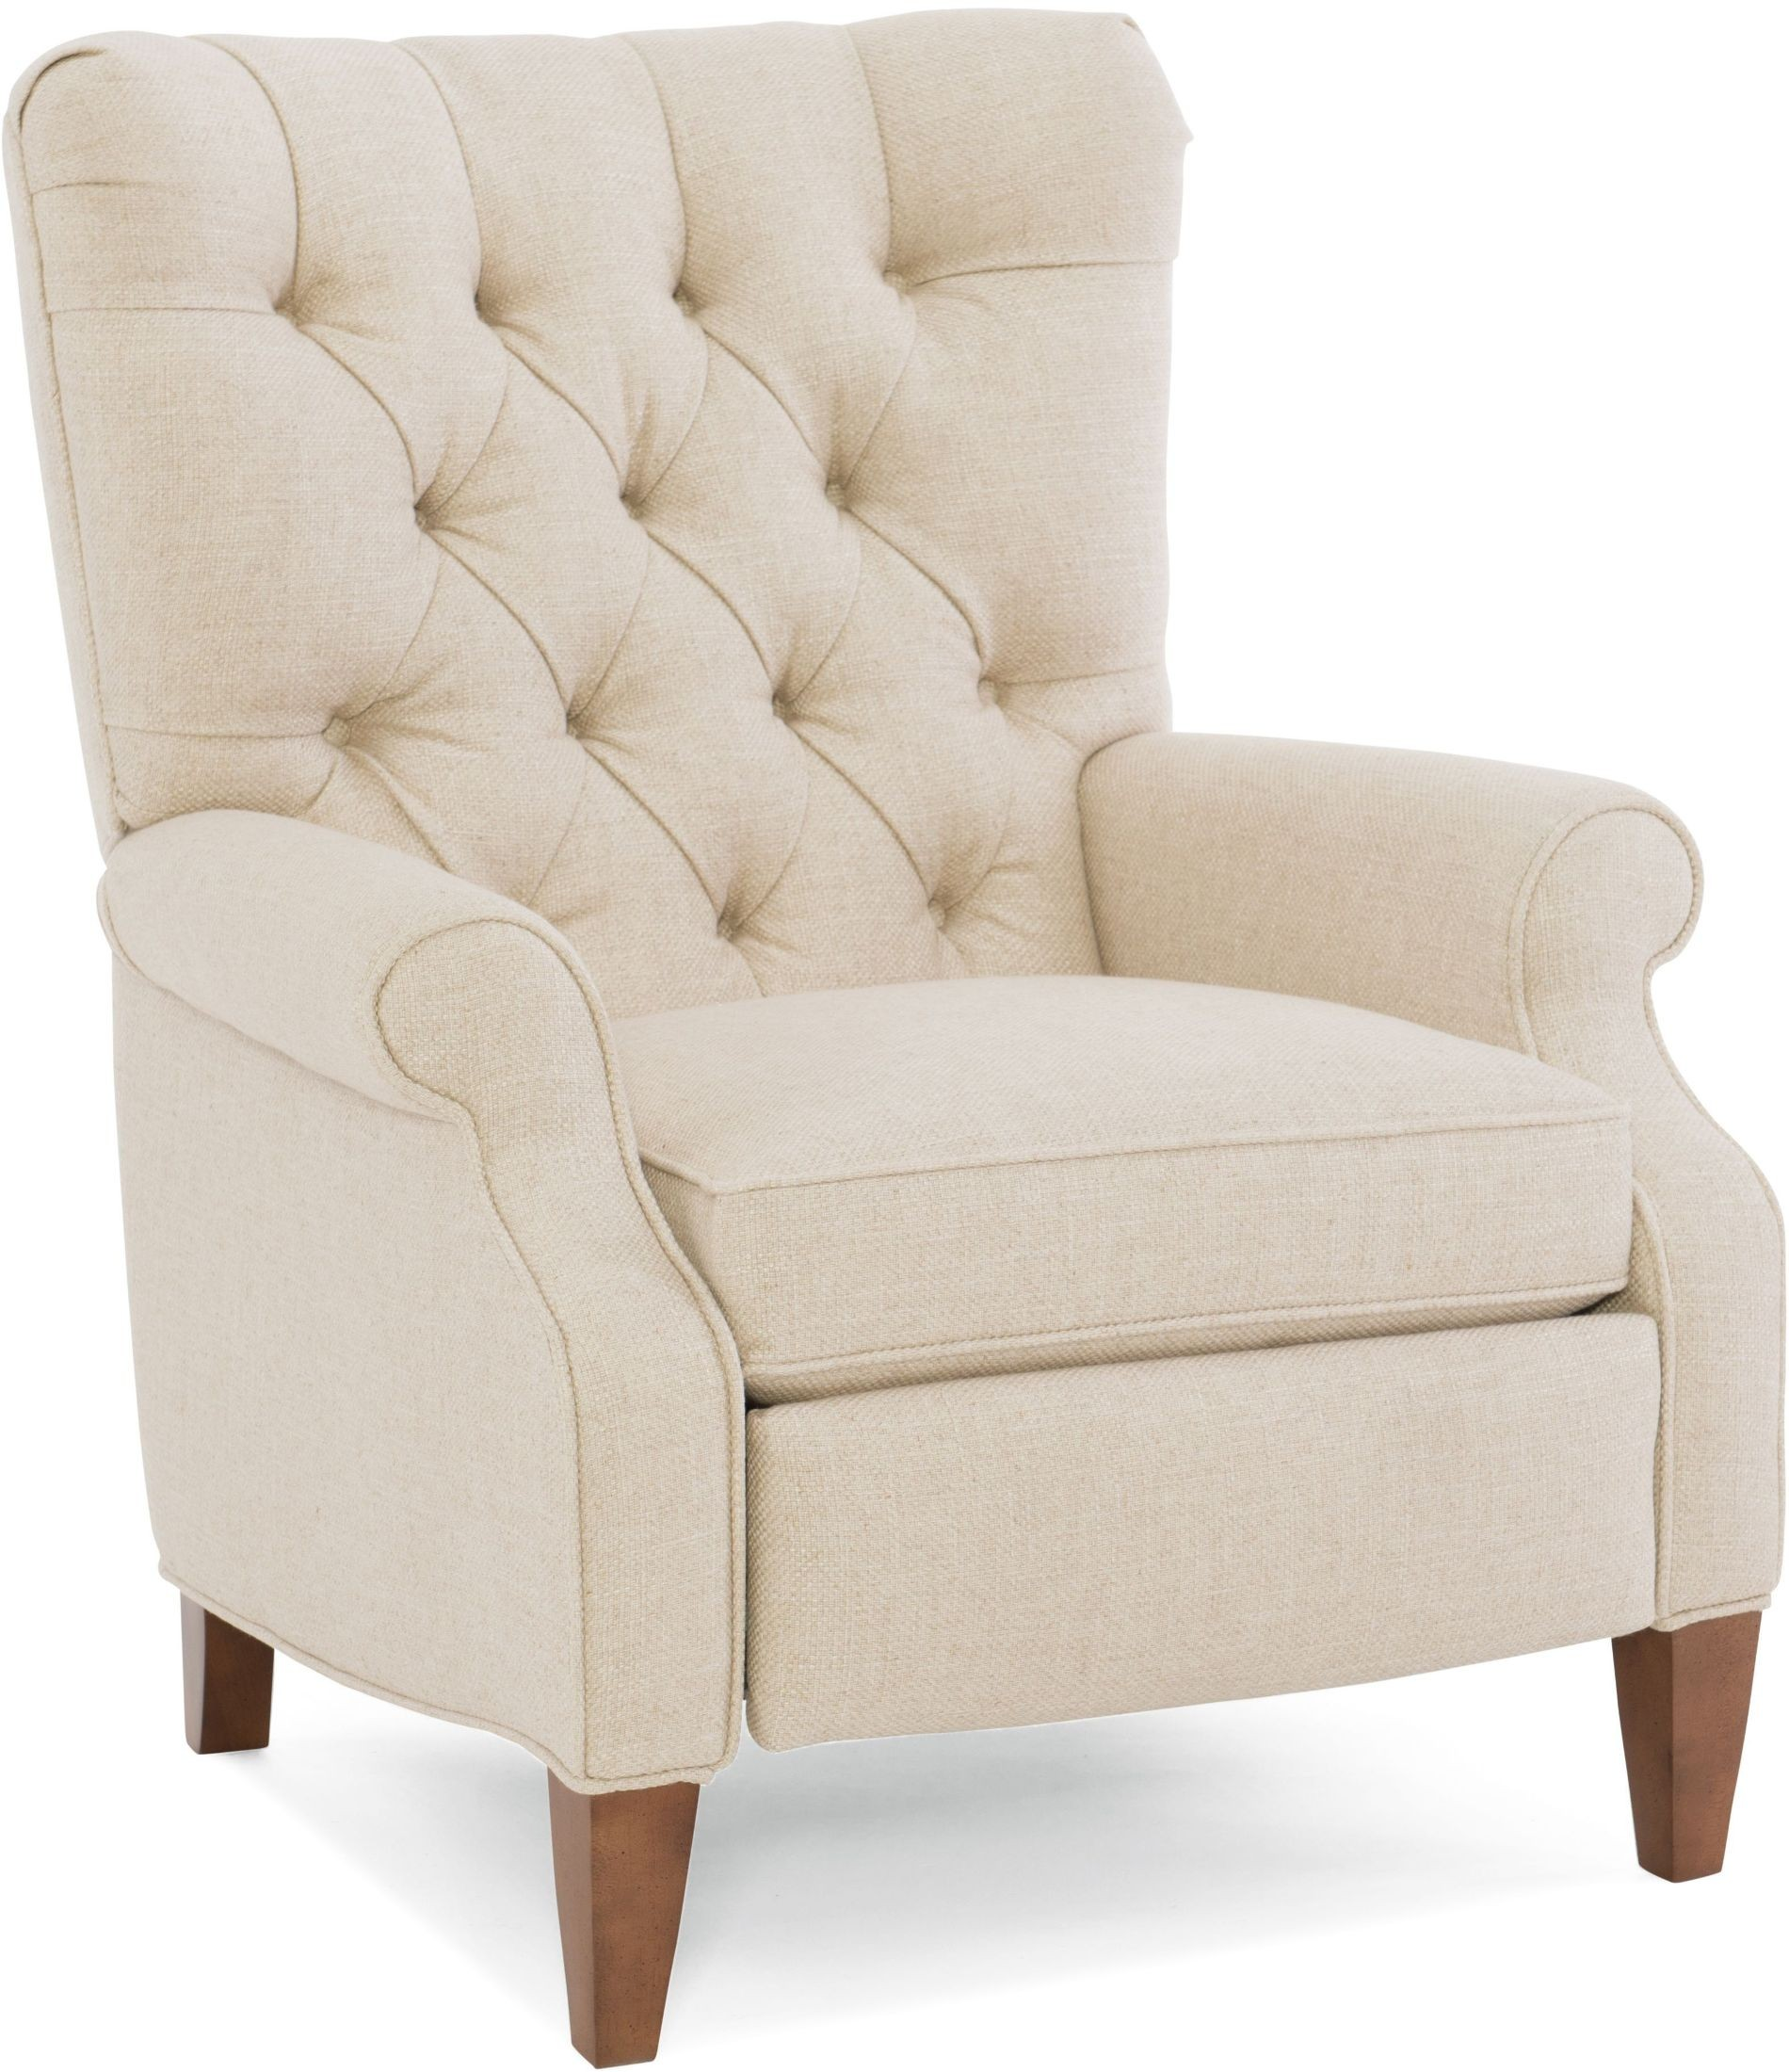 Annick Cream Recliner By Sam Moore Smx 5910400030 04clas